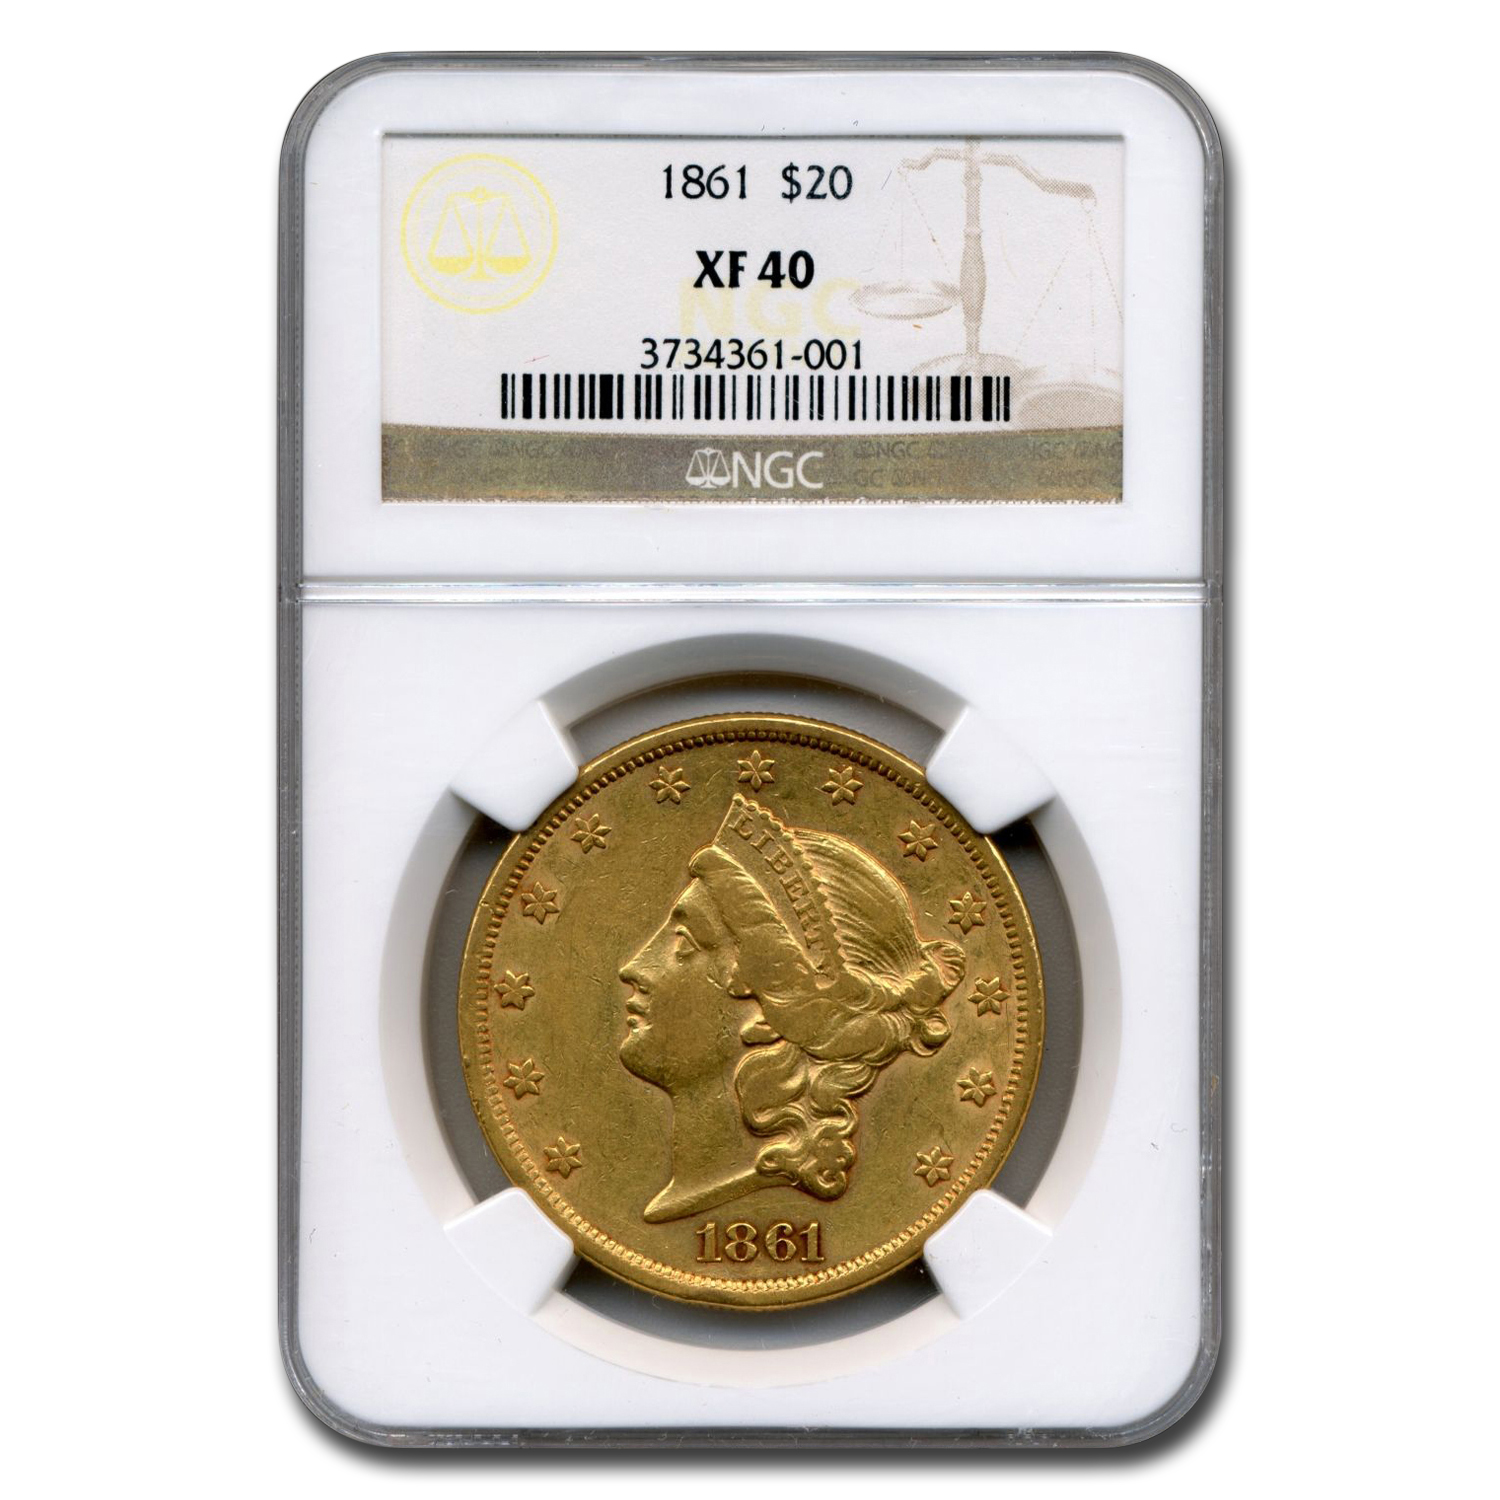 1861 $20 Gold Liberty Double Eagle - XF-40 NGC